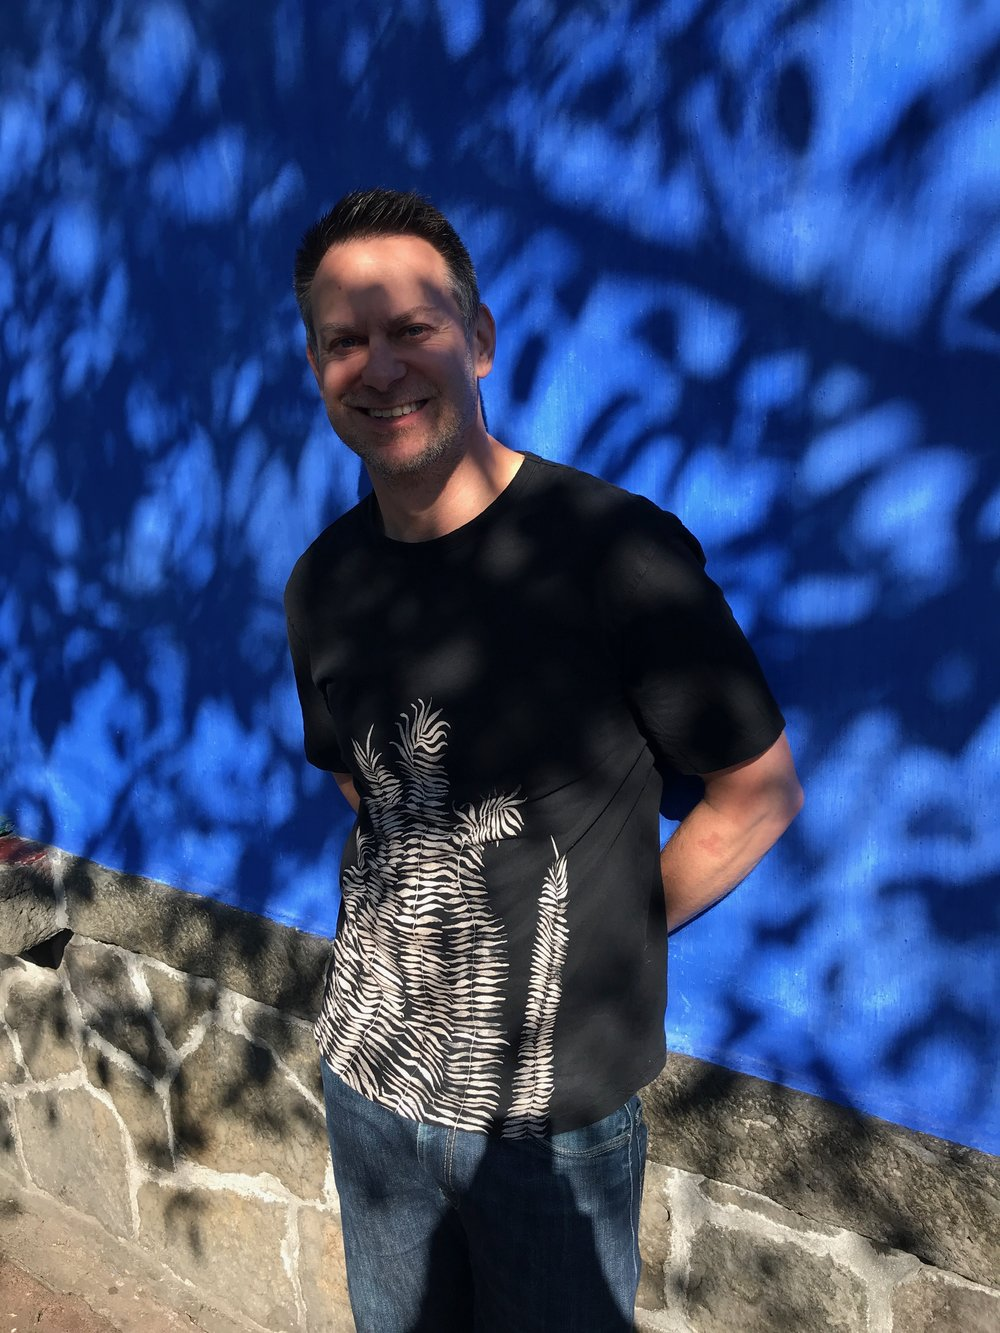 Duke leans on the iconic blue walls of La Casa Azul while we wait to go in